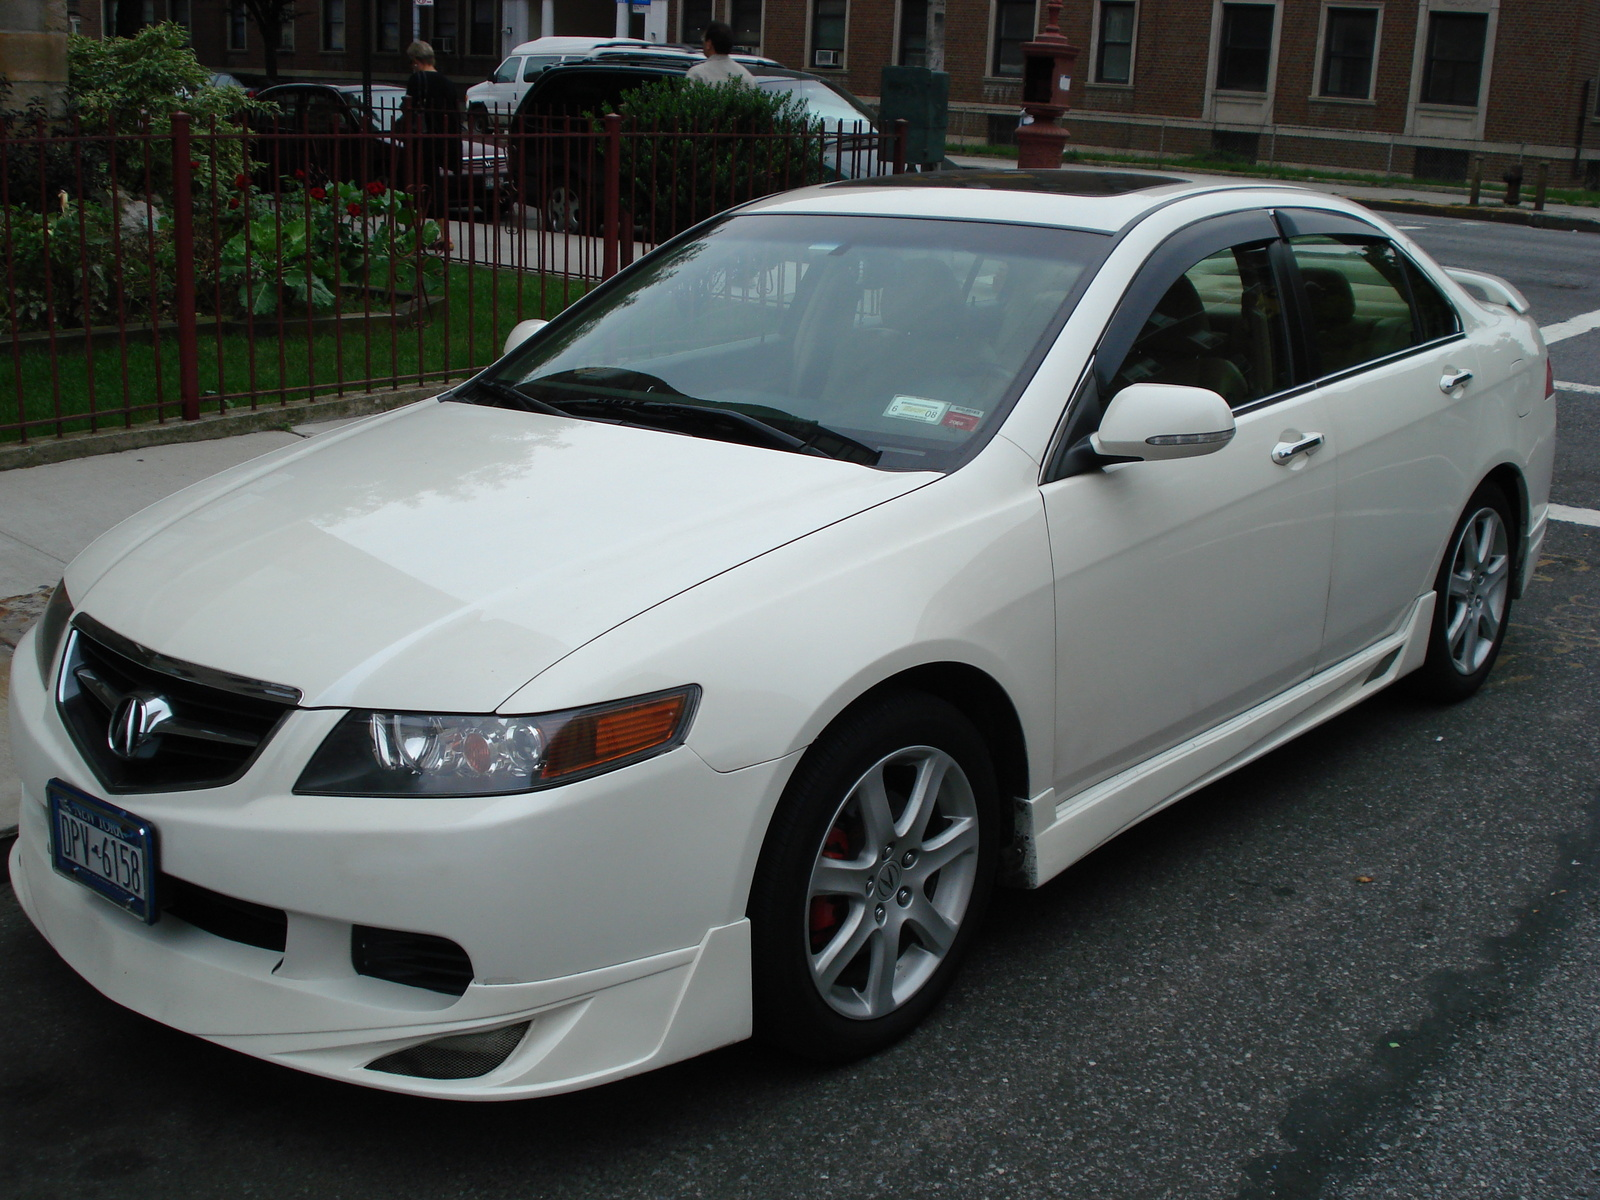 acura tsx images #11